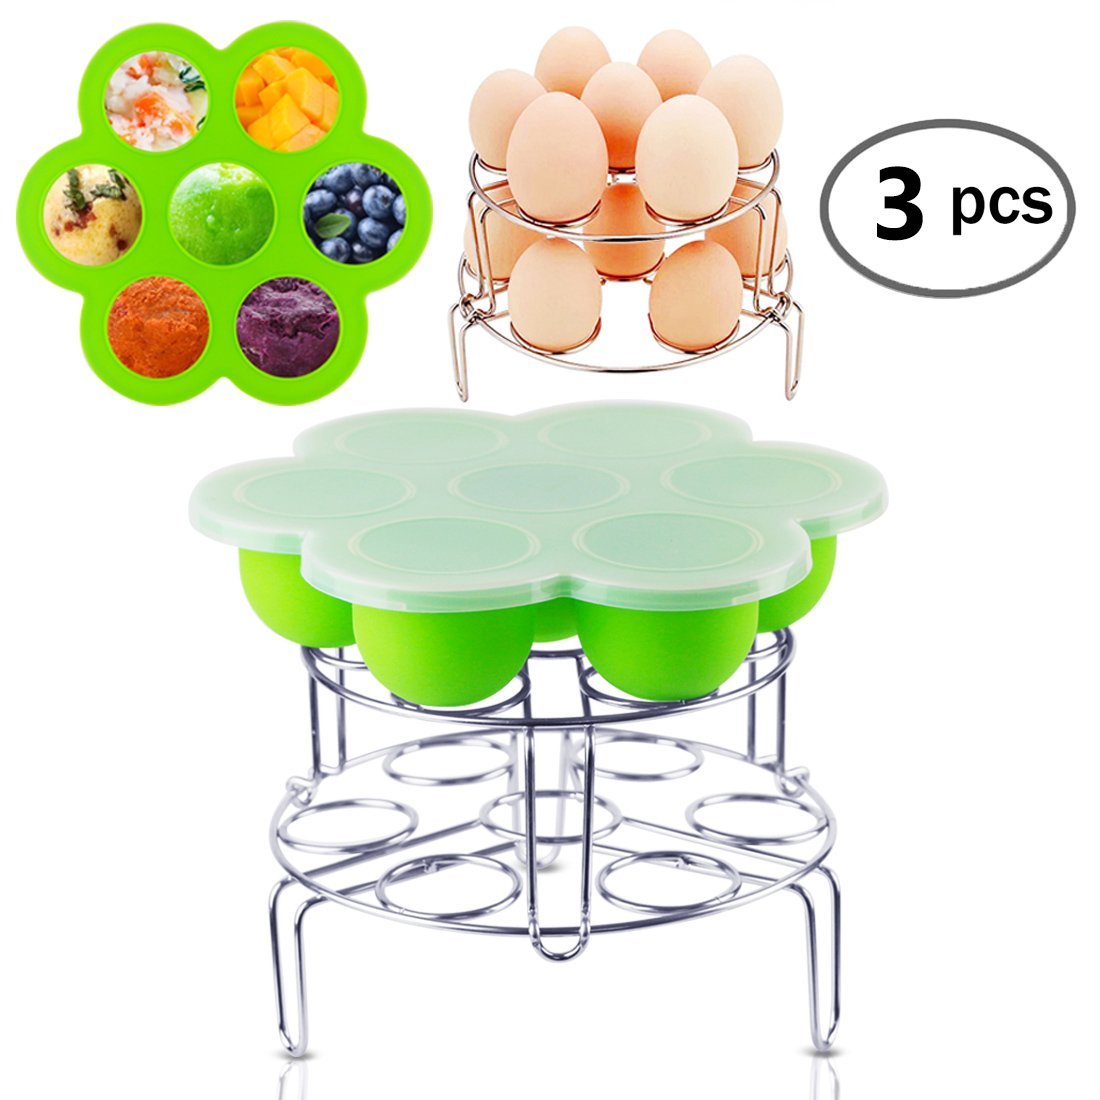 Instant Pot Accessories Silicone Egg Bites Molds with 2 Pcs Stainless Steel Egg Steamer Rack Set for Instant Pot Accessories Reusable Storage Container By Fanuk by Fanuk